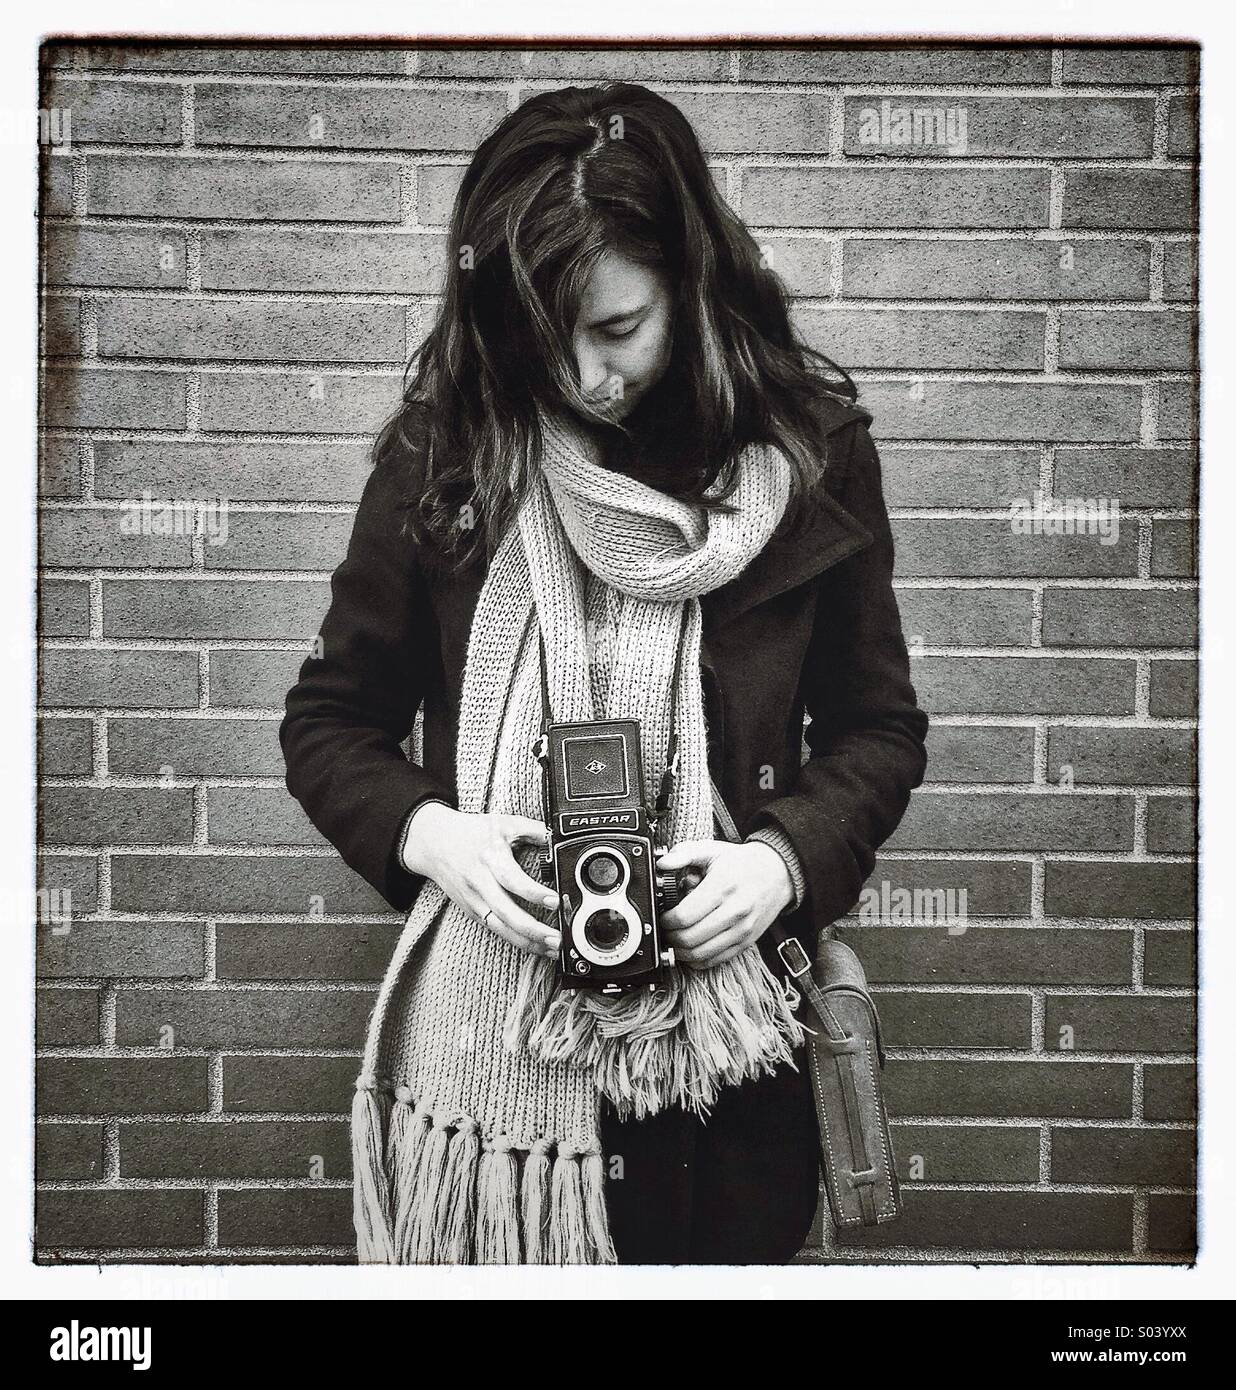 Young woman taking picture with vintage camera - Stock Image